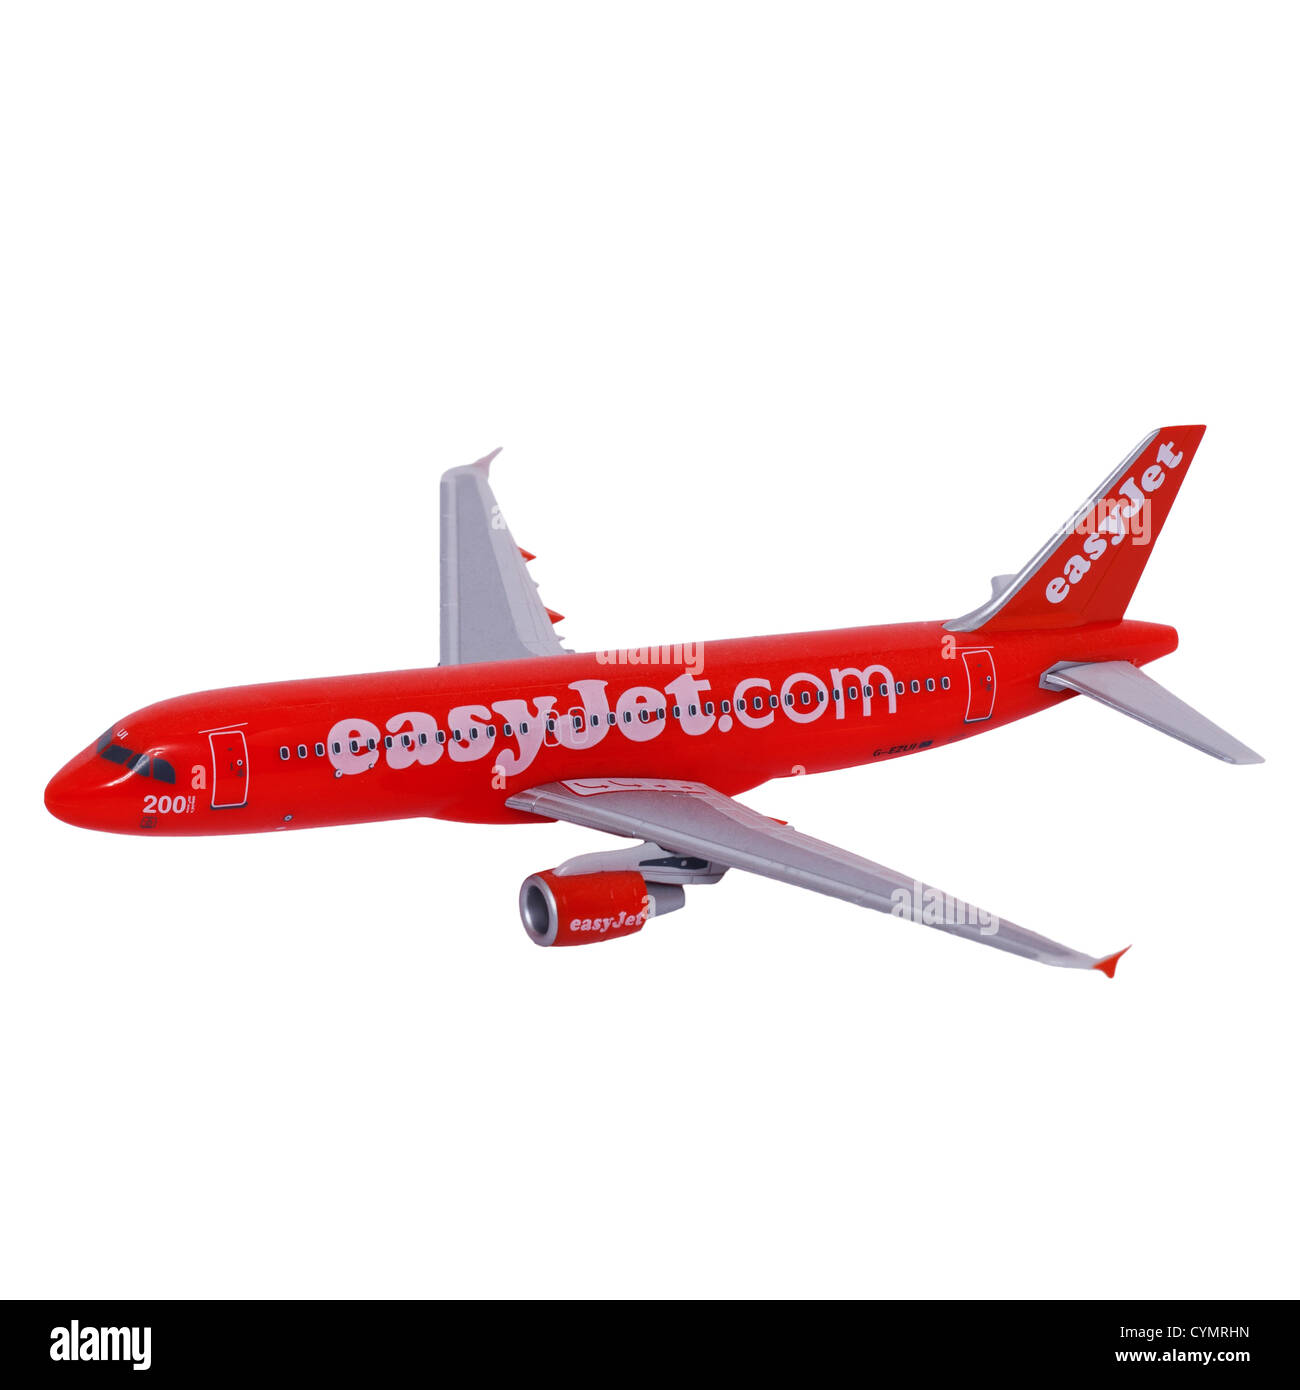 A model easyjet Airbus 320 plane on a white background - Stock Image